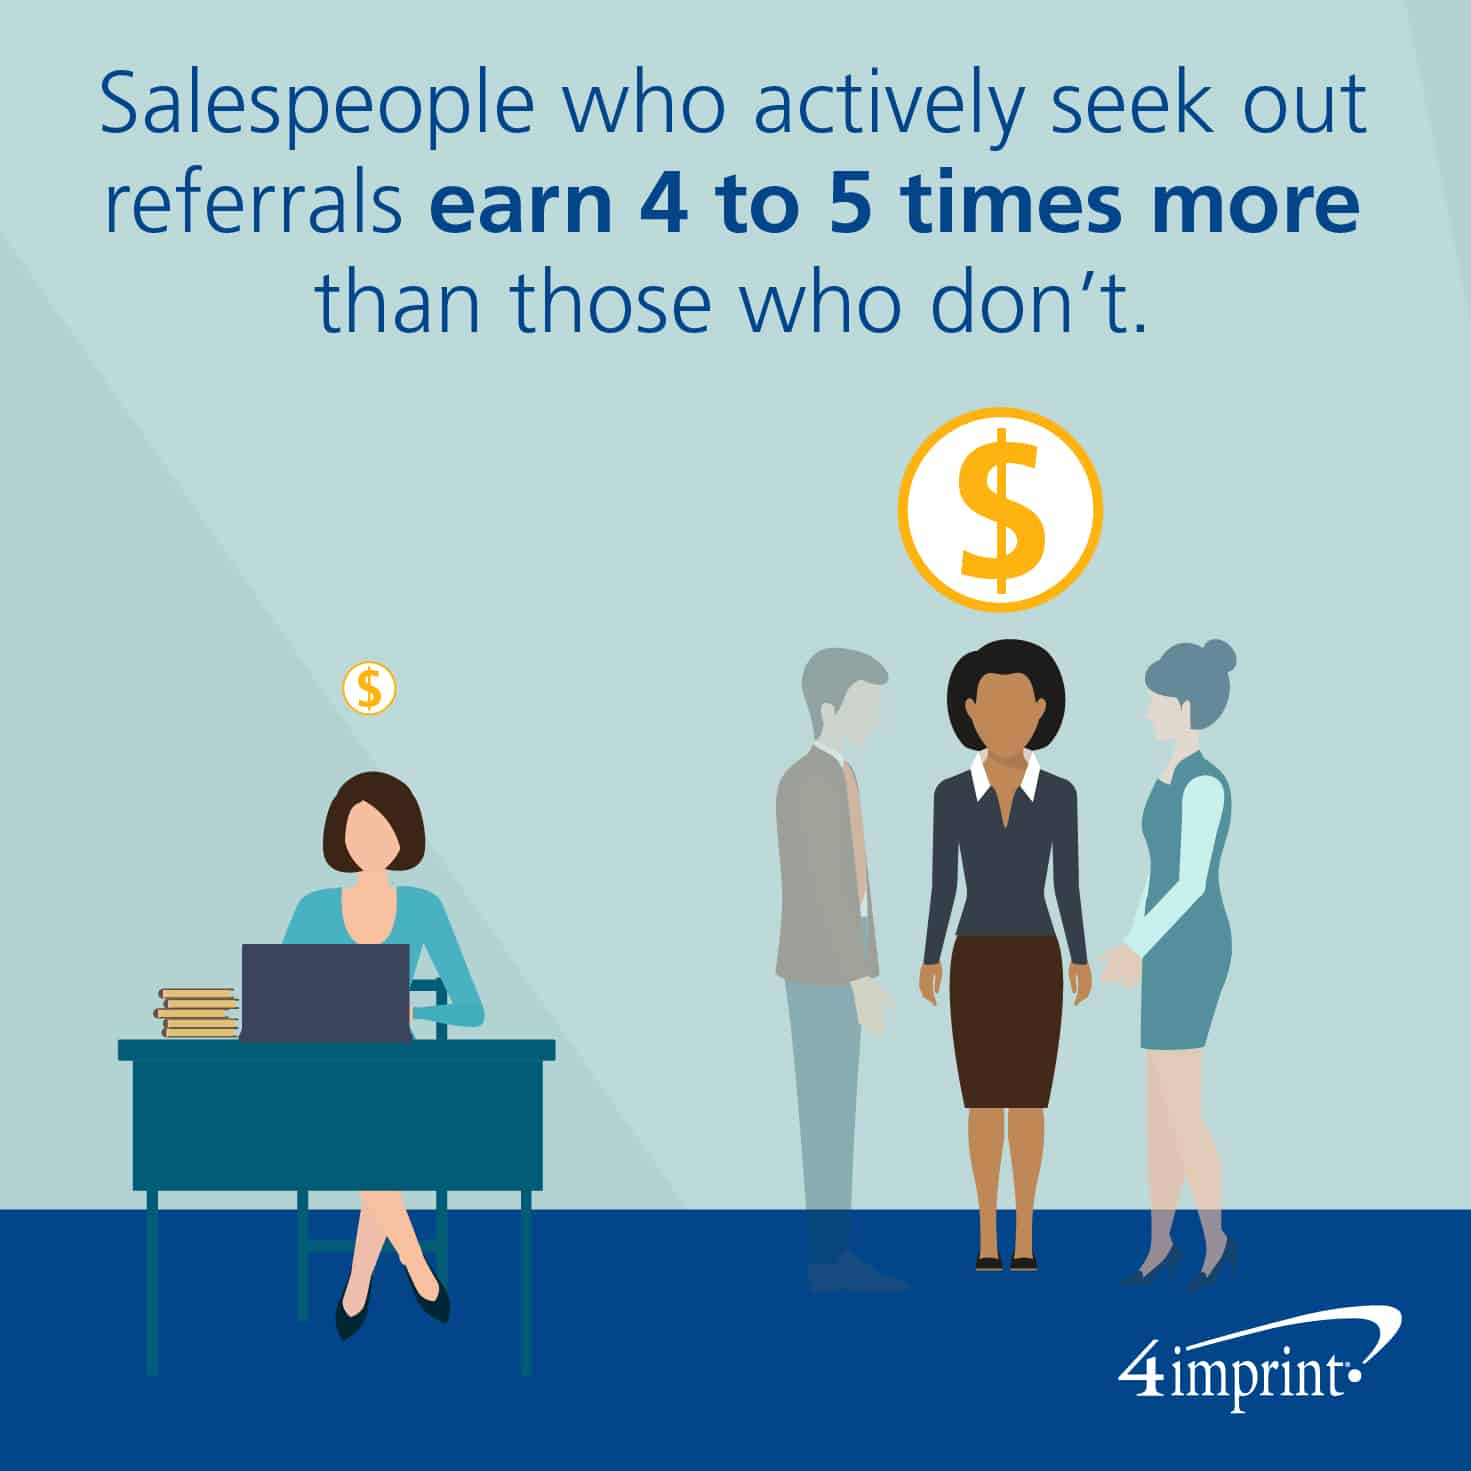 Salespeople who actively seek out referrals earn 4 to 5 times more than those who don't. Get business gift ideas from 4imprint.